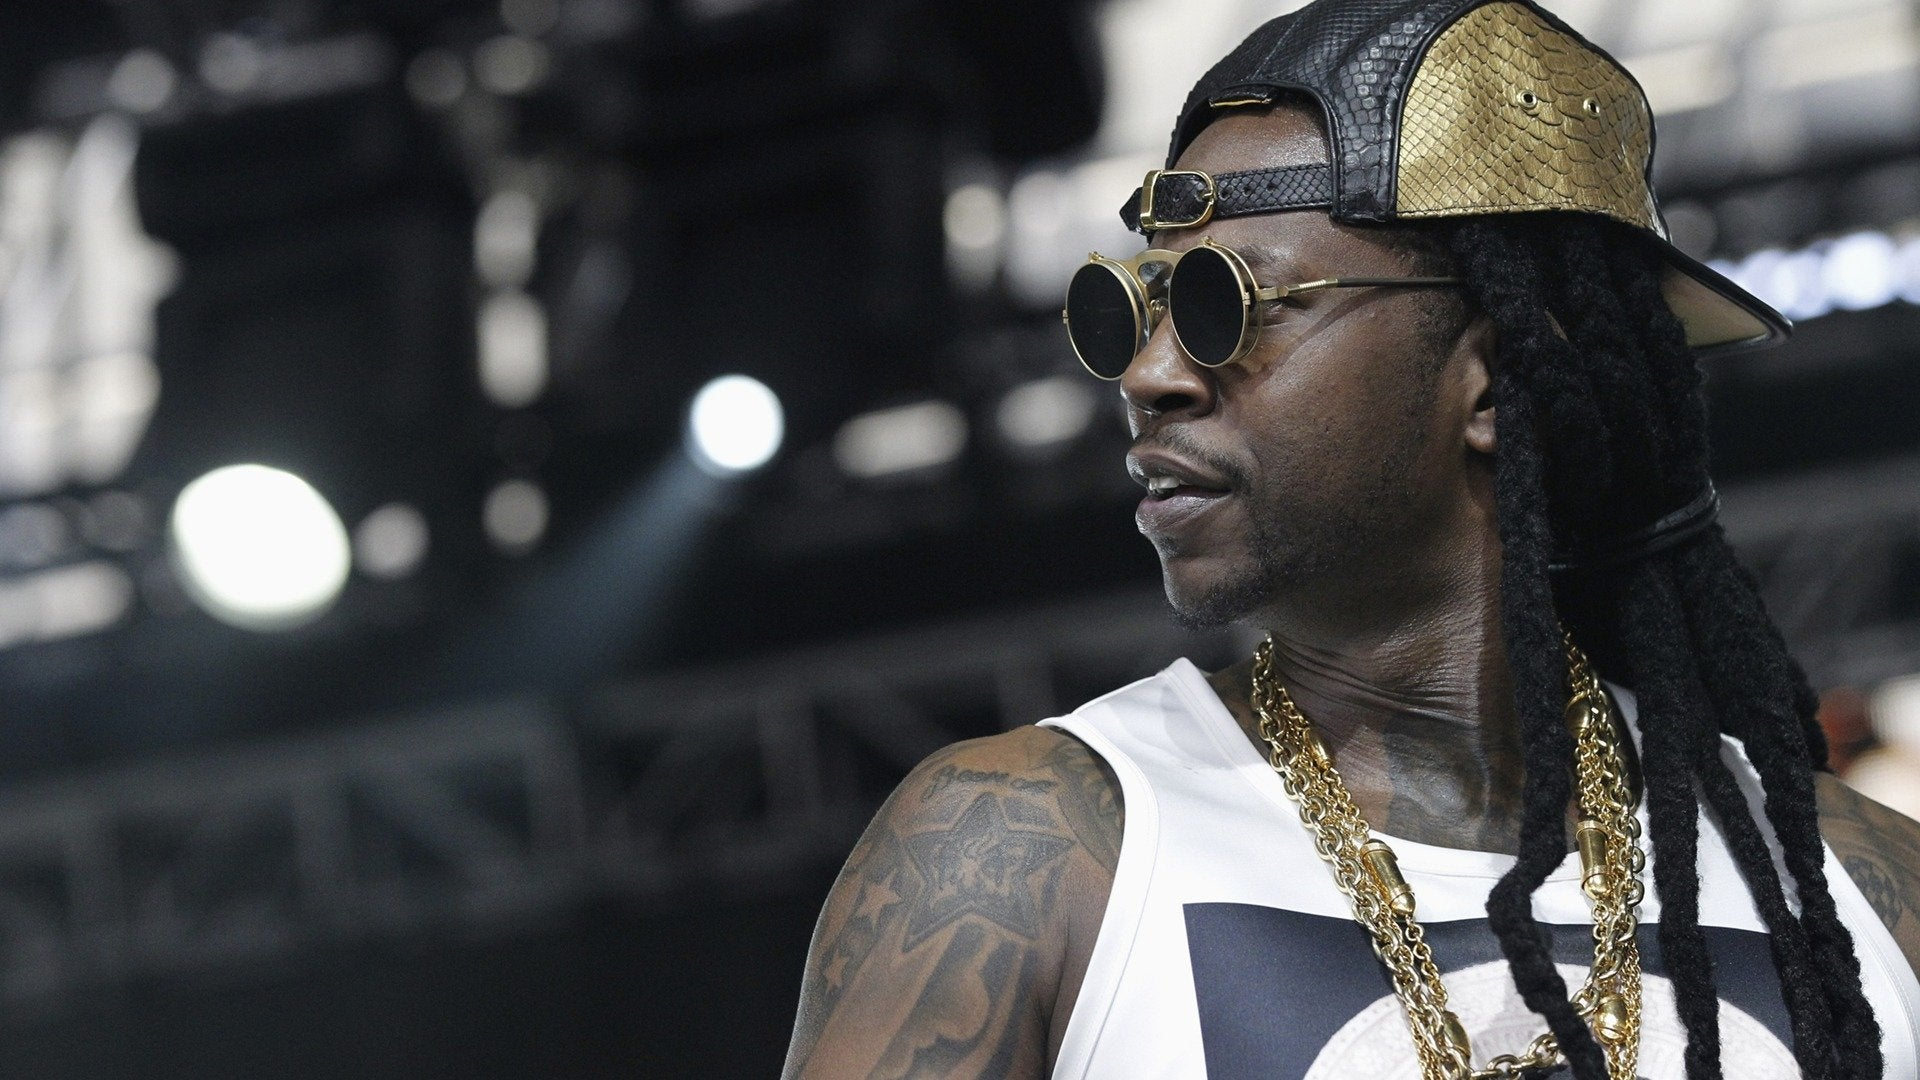 The Best of 2 Chainz